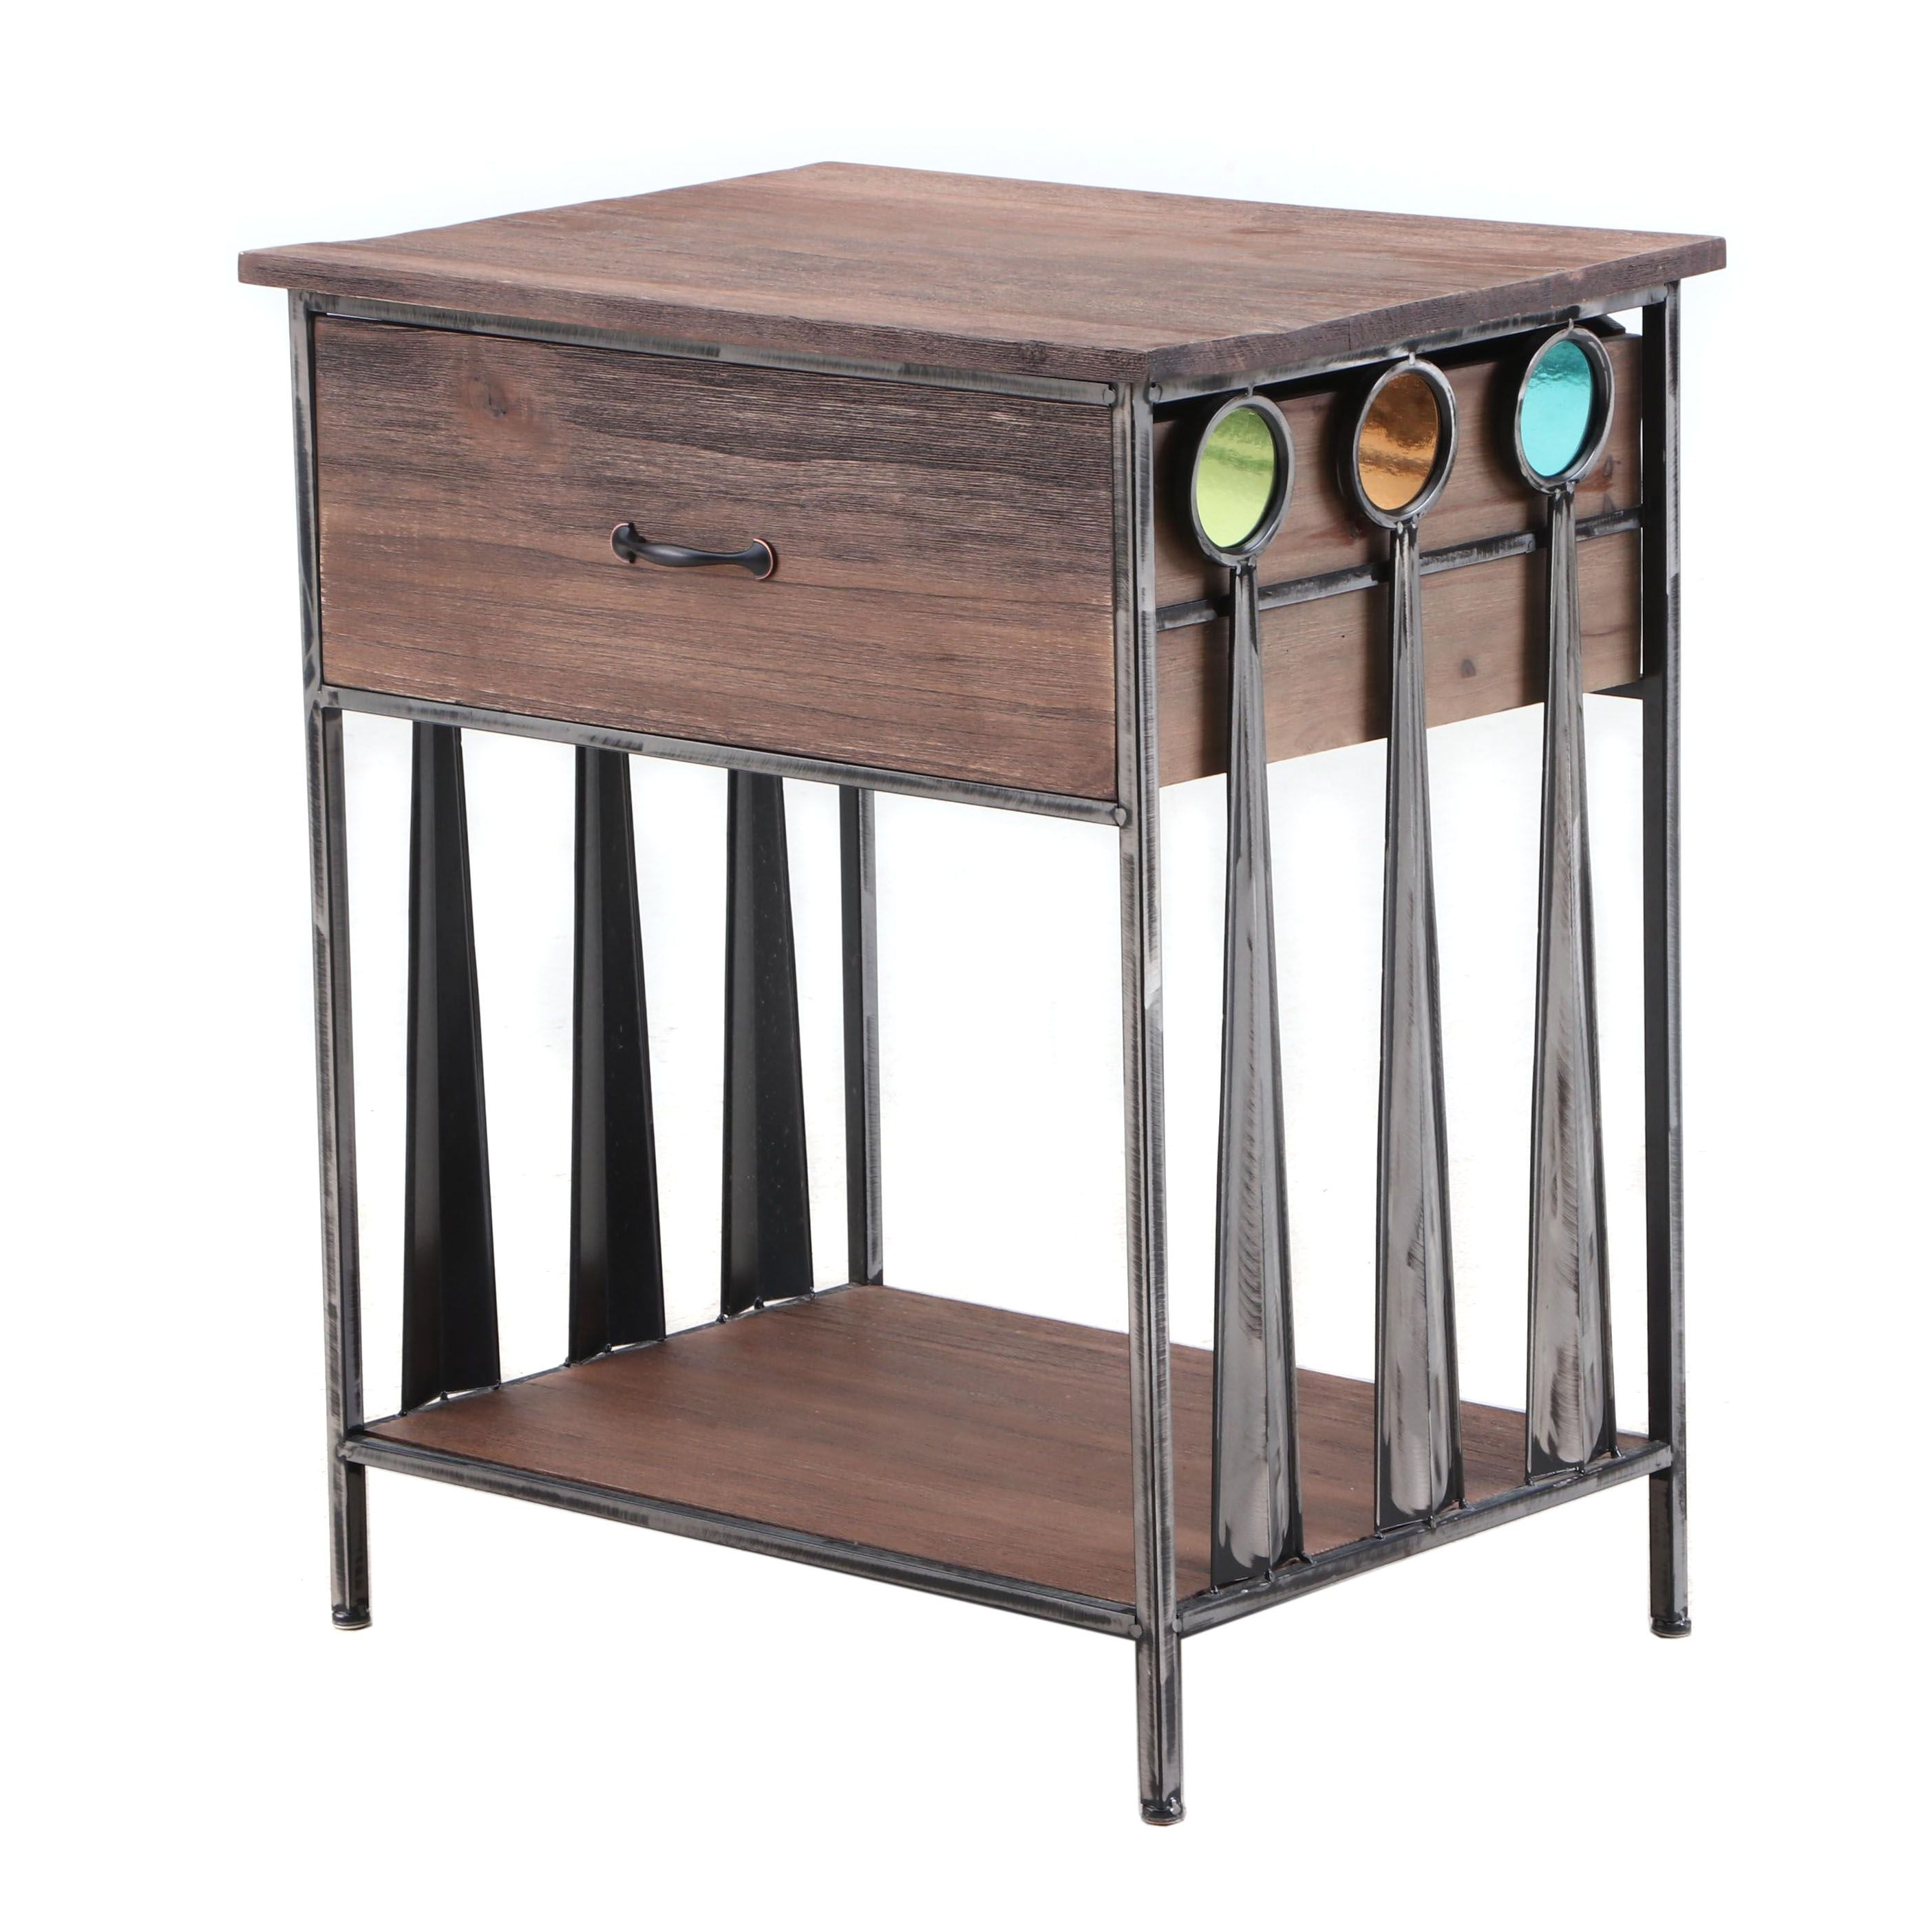 Contemporary Distressed Wood Accent Table